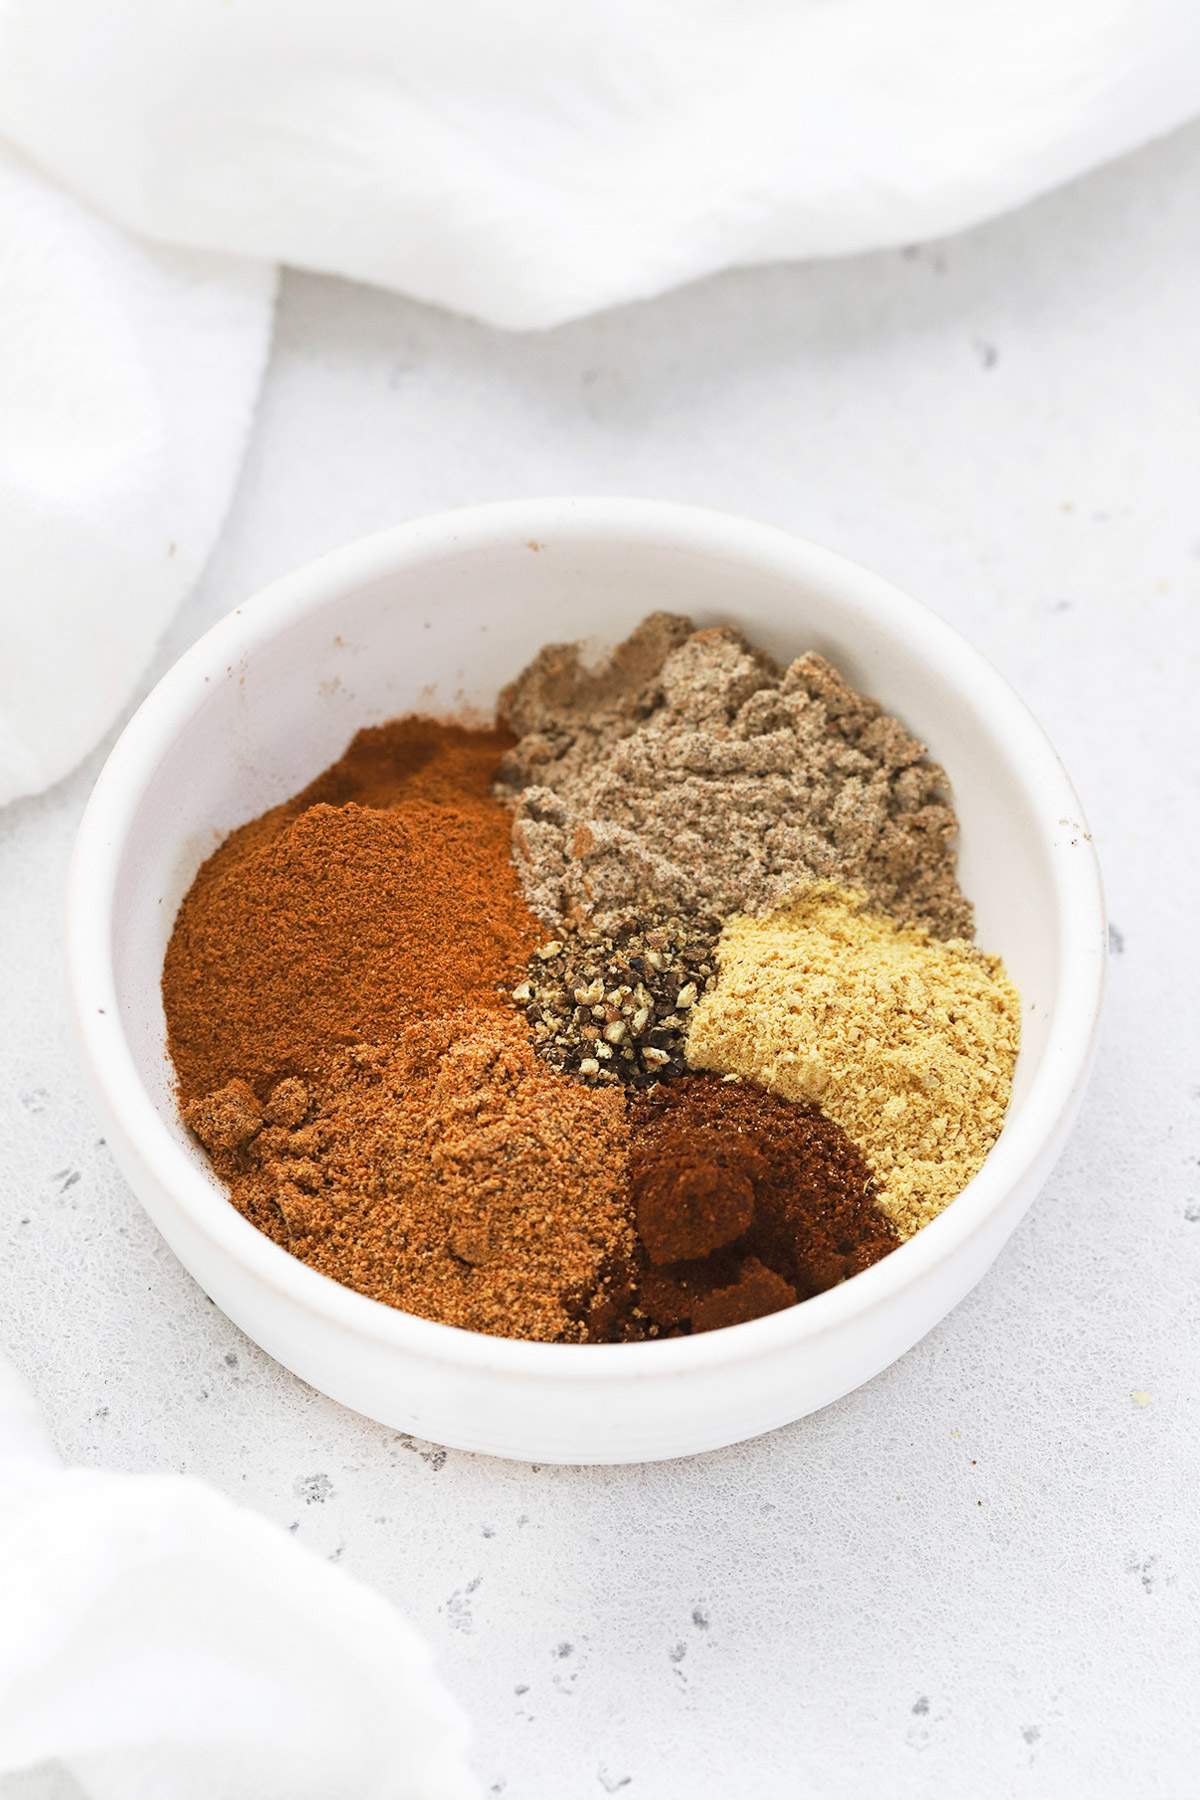 Front view of a bowl of homemade chai spice mix from scratch